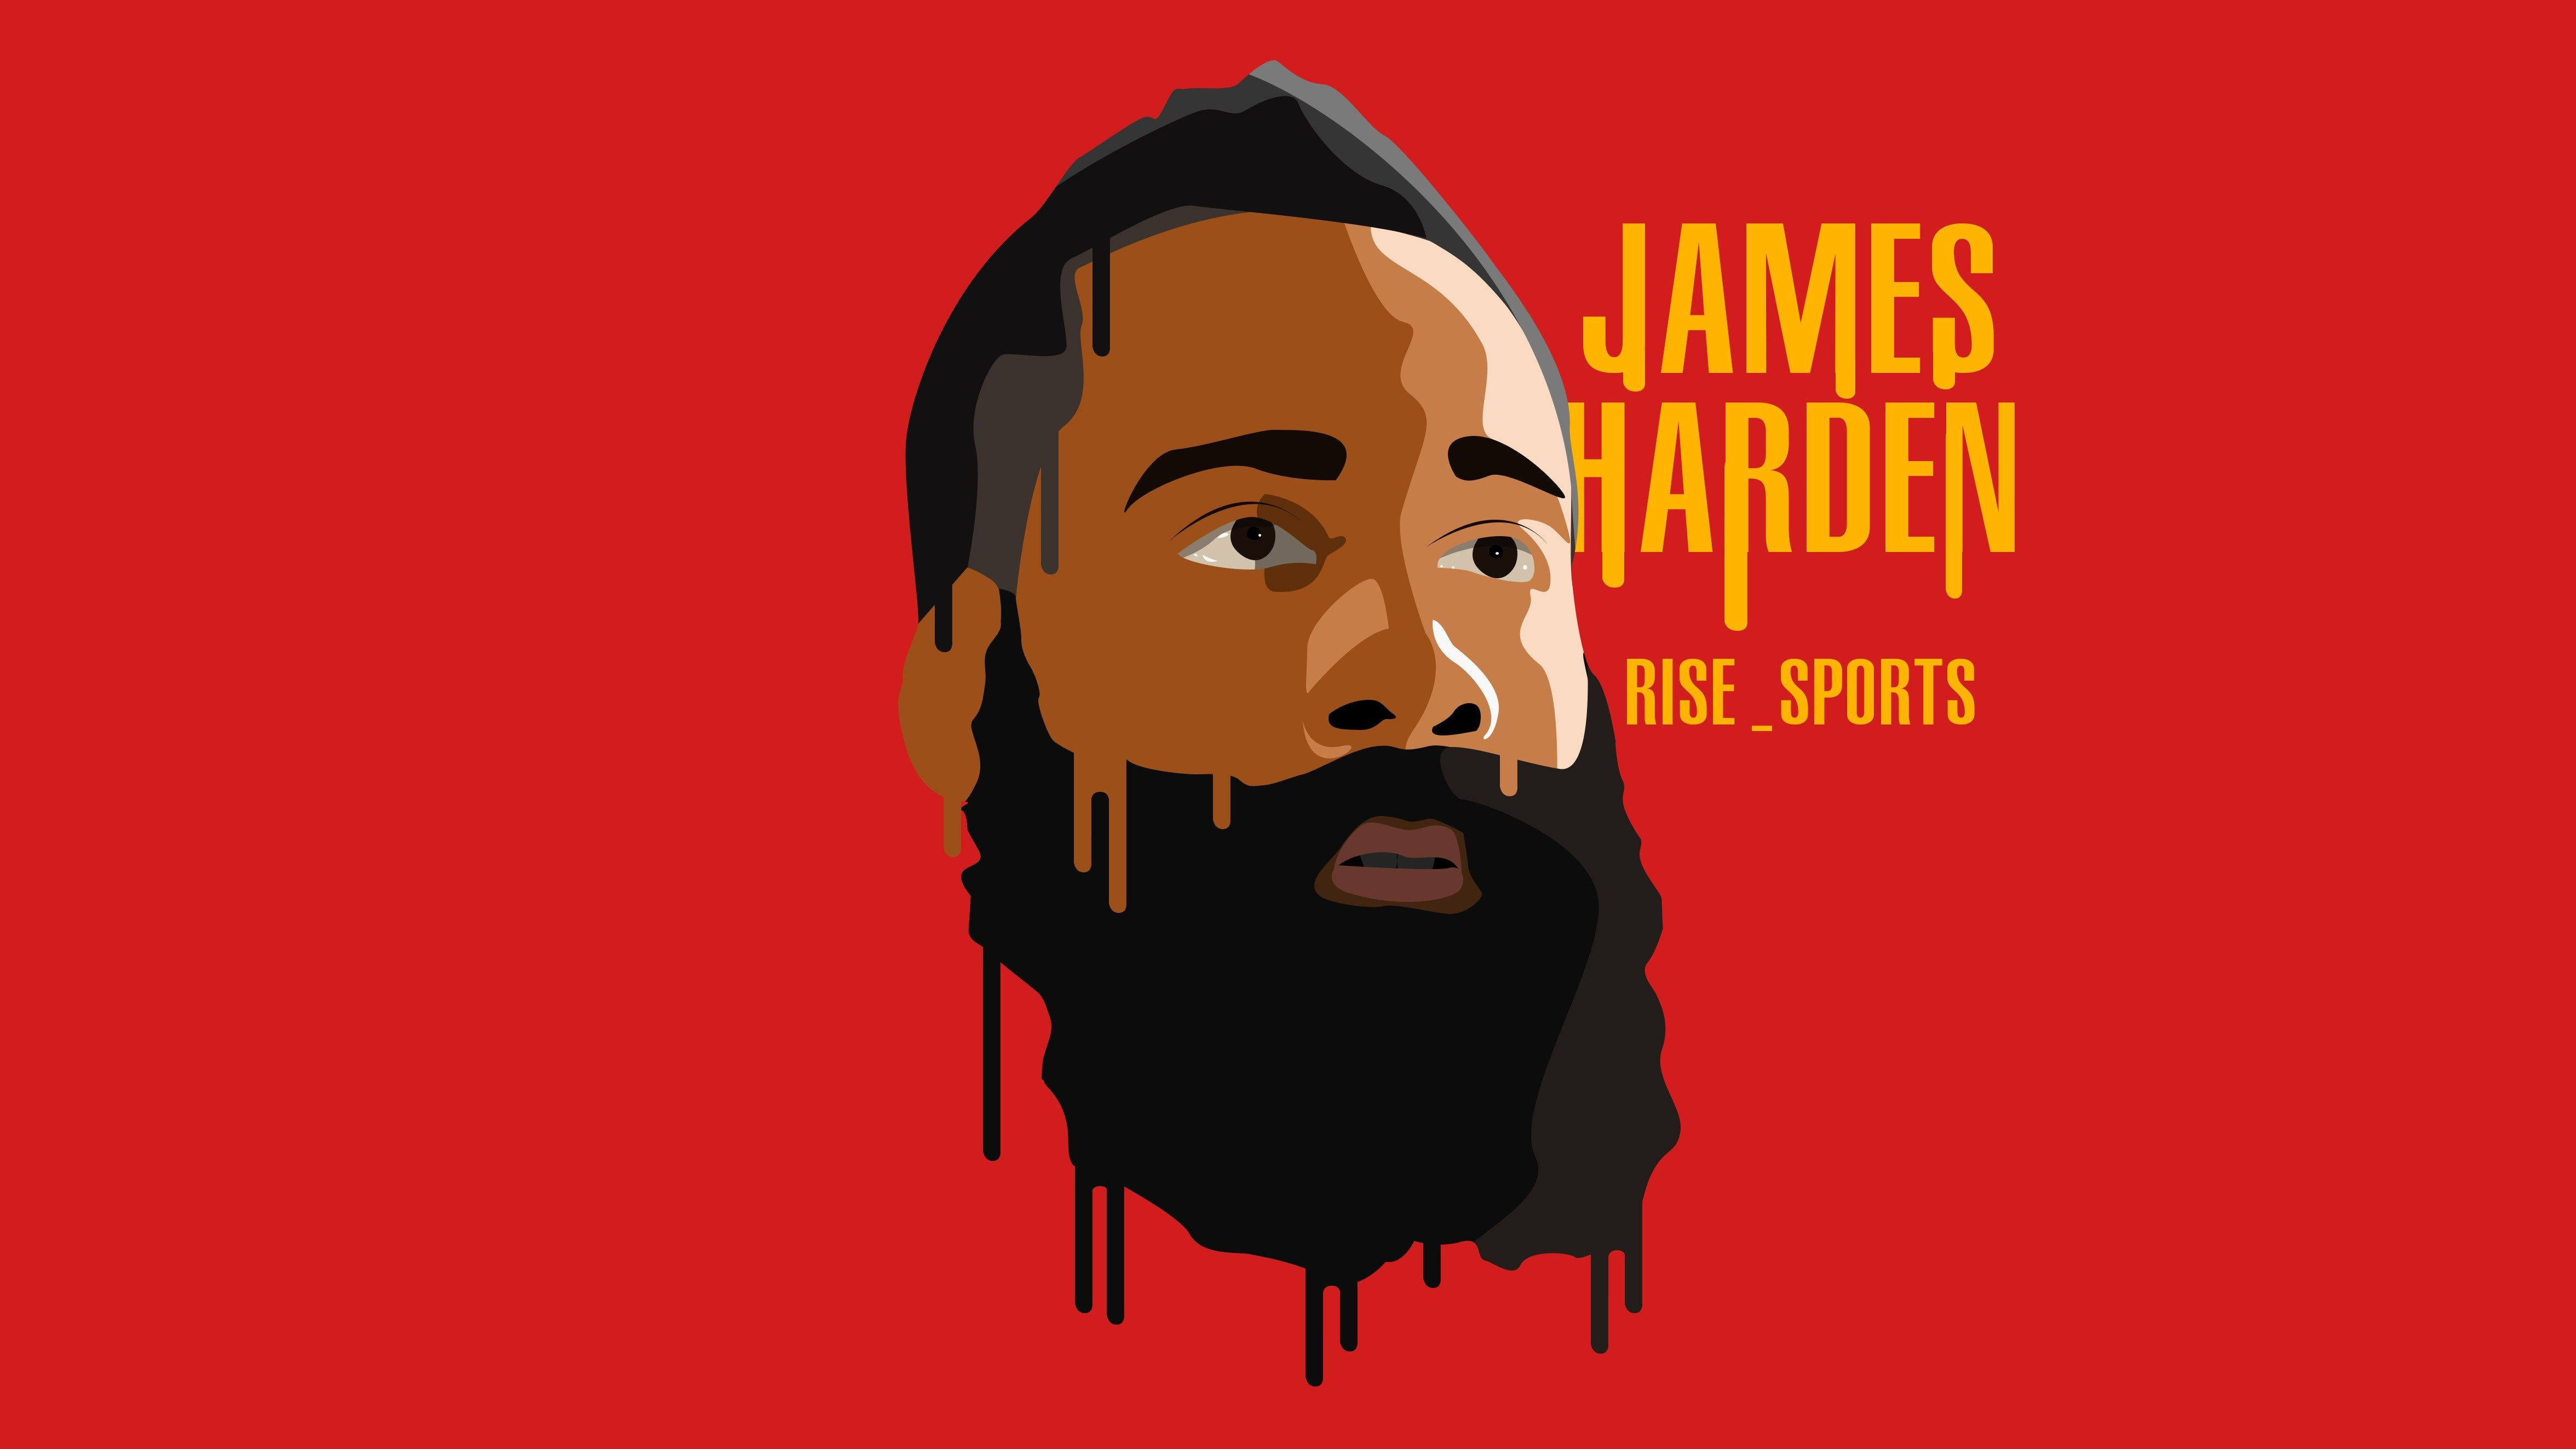 james harden Wallpaper Collection James harden